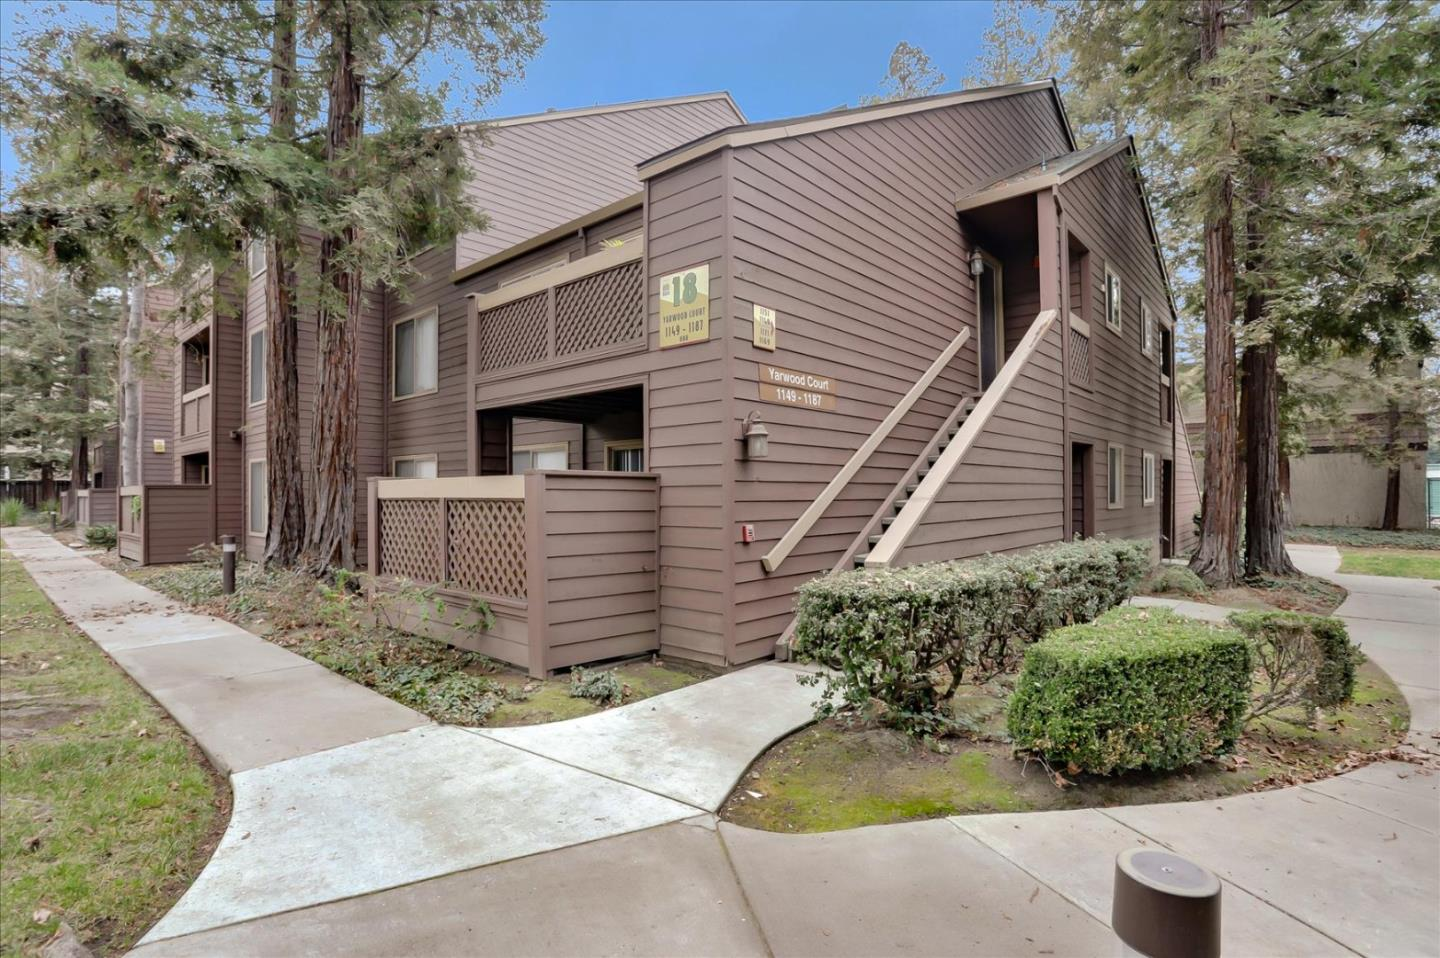 AMAZINGLY SHARP CONDO FOR THE BEST PRICE IN RESORT-LIKE SIERRA CREST!!! This beautiful condo has been upgraded and freshly painted. Chefs kitchen with wood cabinets, granite countertops, stainless steel appliances and large designer sink. The main living area features gorgeous wood floors, recessed lighting and a sliding door that leads to the zen outdoor space. The spacious master bedroom has a large walk-in closet with closet organizer system. The bathroom is generous in size and pretty tiled floors. Indoor laundry!!! Additional storage inside the bathroom, hallway and balcony. Sierra Crest features 2 pools, 2 spas, gym, park-like grounds, bbq area and visitor parking. Amazing location near Santana Row, Valley Fair, Downtown San Jose, transportation and freeways!